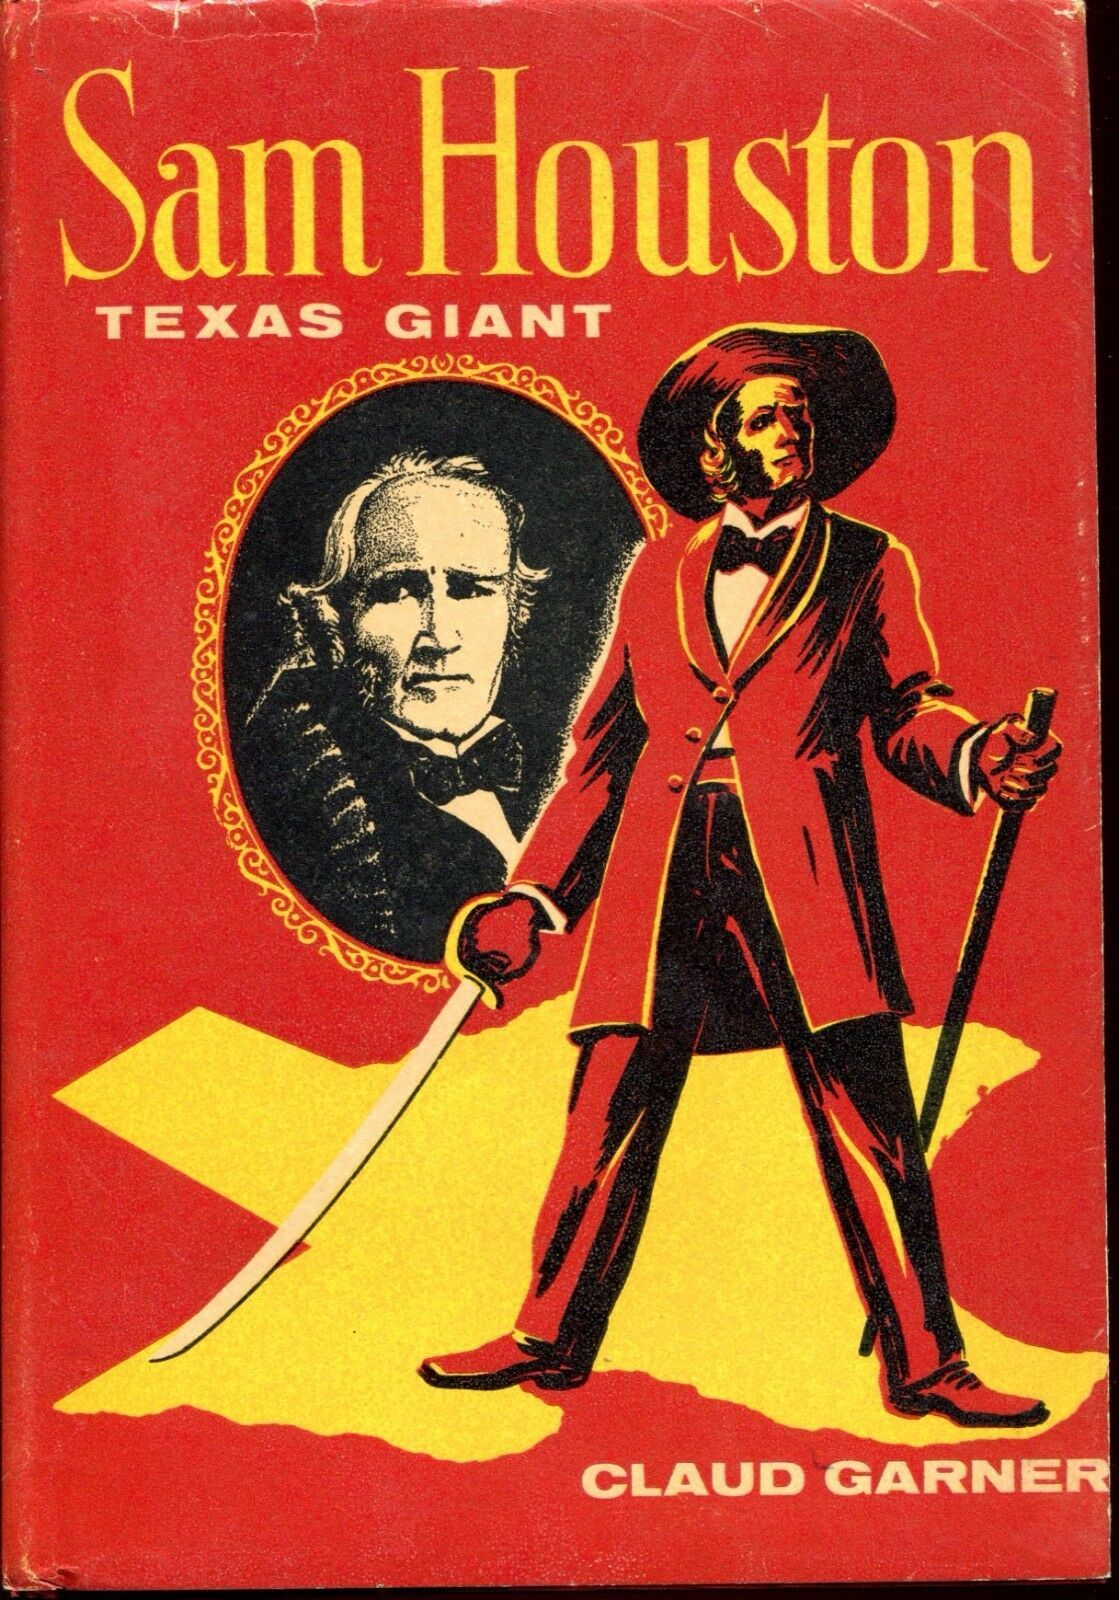 Primary image for Sam Houston Texas Giant by Claud Garner Naylor 1969 HC DJ Teen-YA Texas History